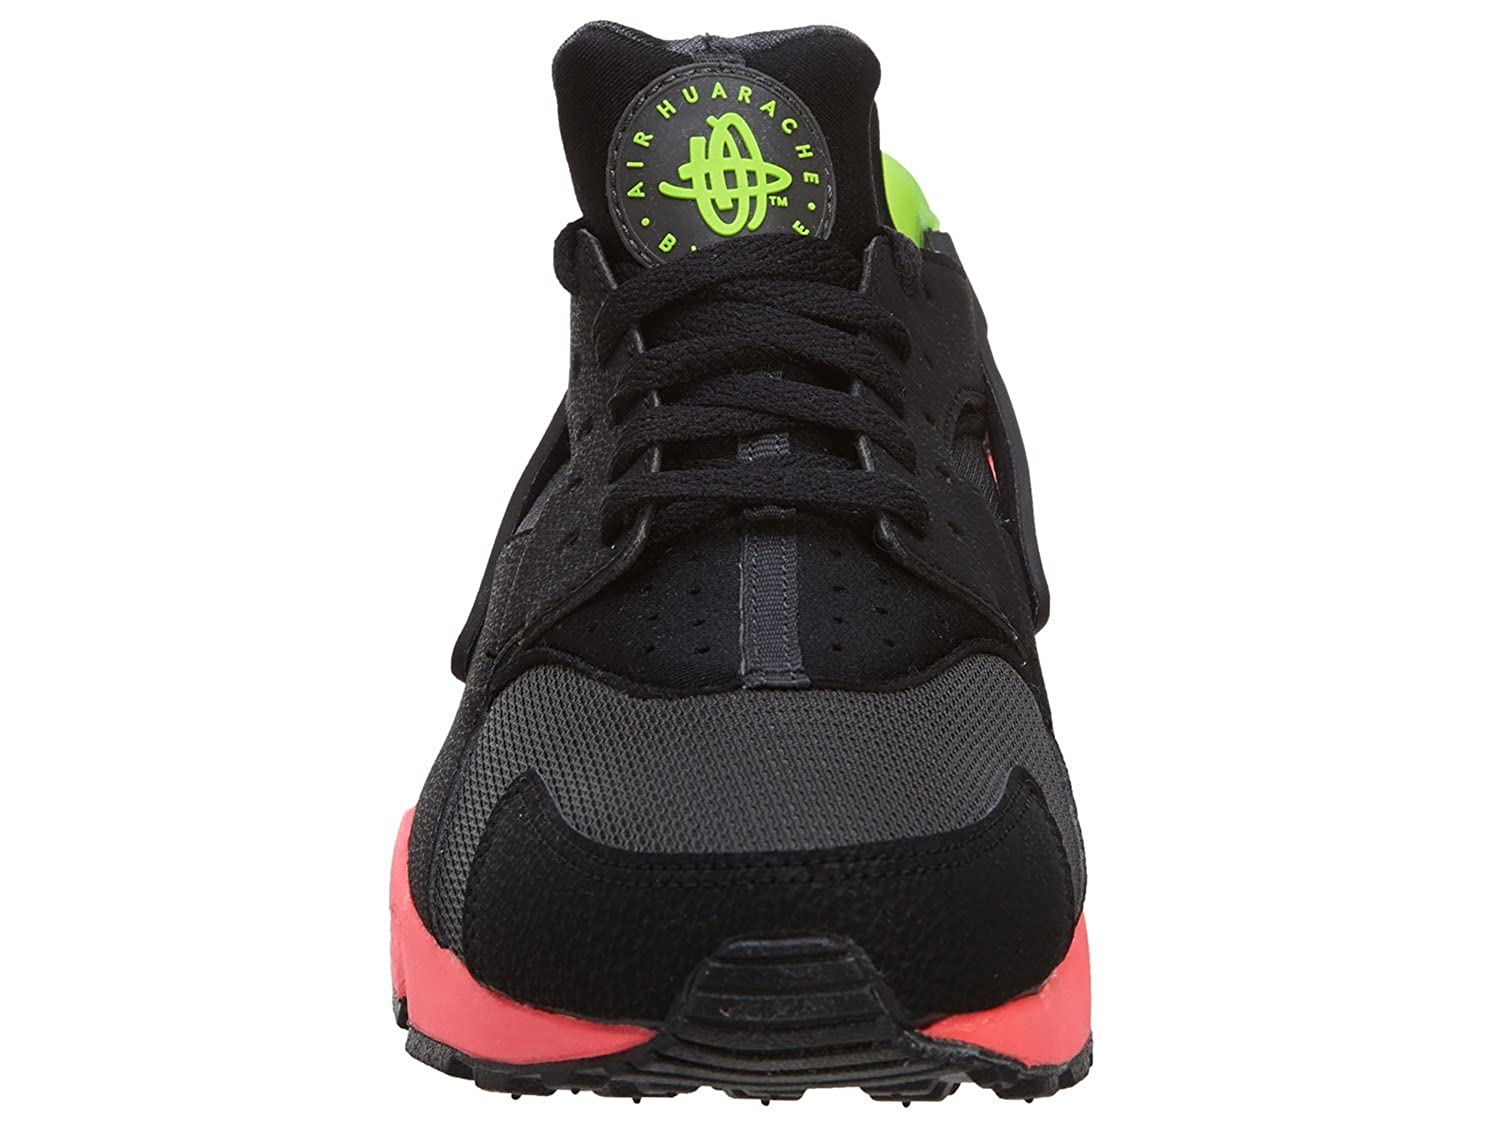 low cost 9240b 3083e Nike Men s - Air Huarache  RARE  Anthracite Black-Hyper Punch-Electric Green   Amazon.co.uk  Shoes   Bags